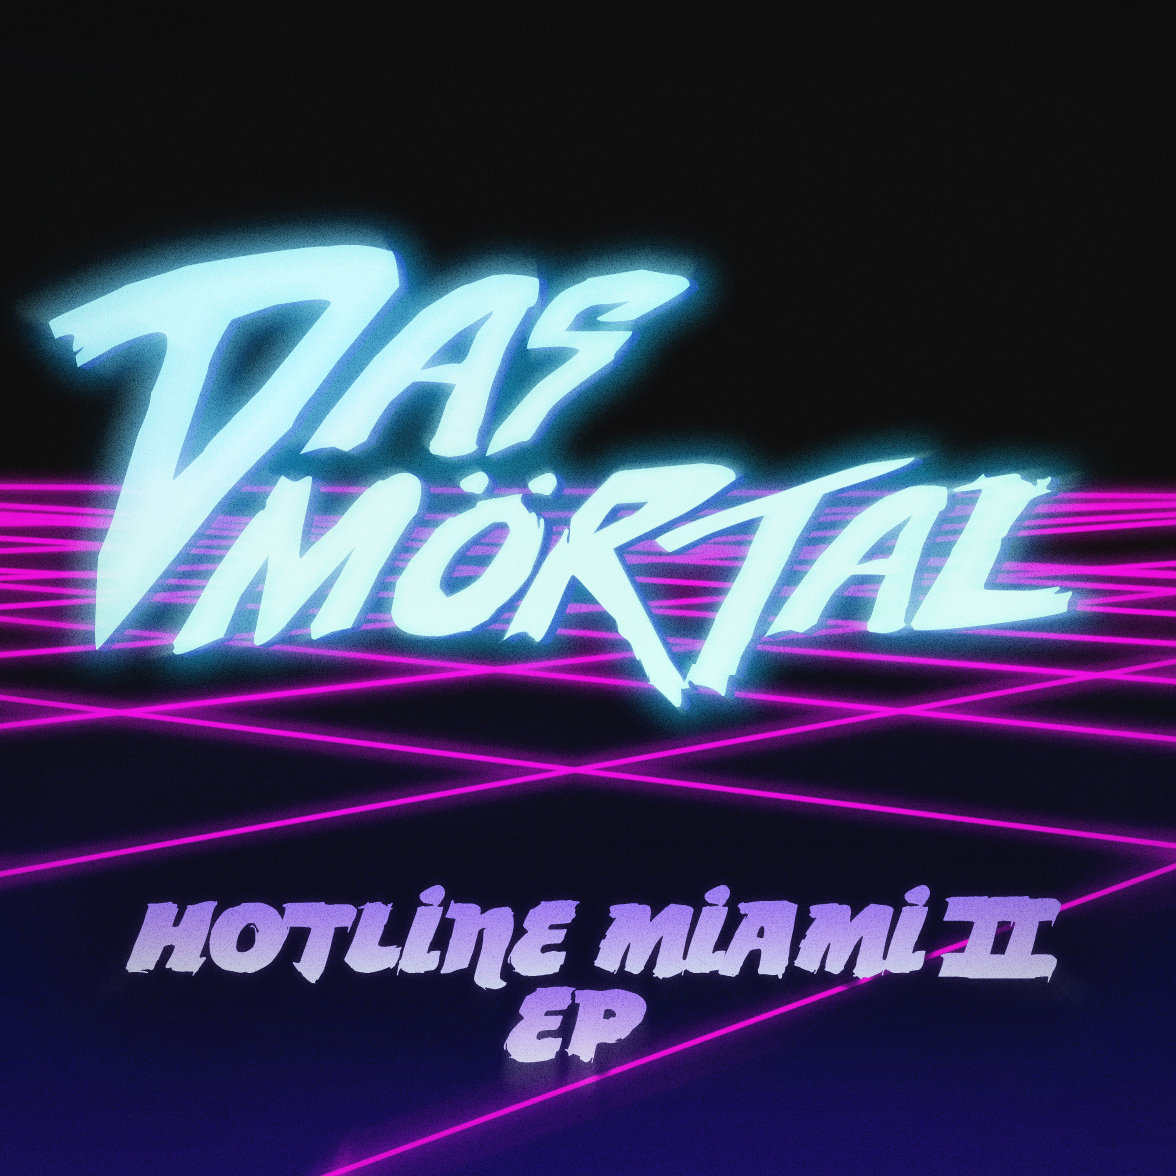 hotline miami 2 soundtrack list